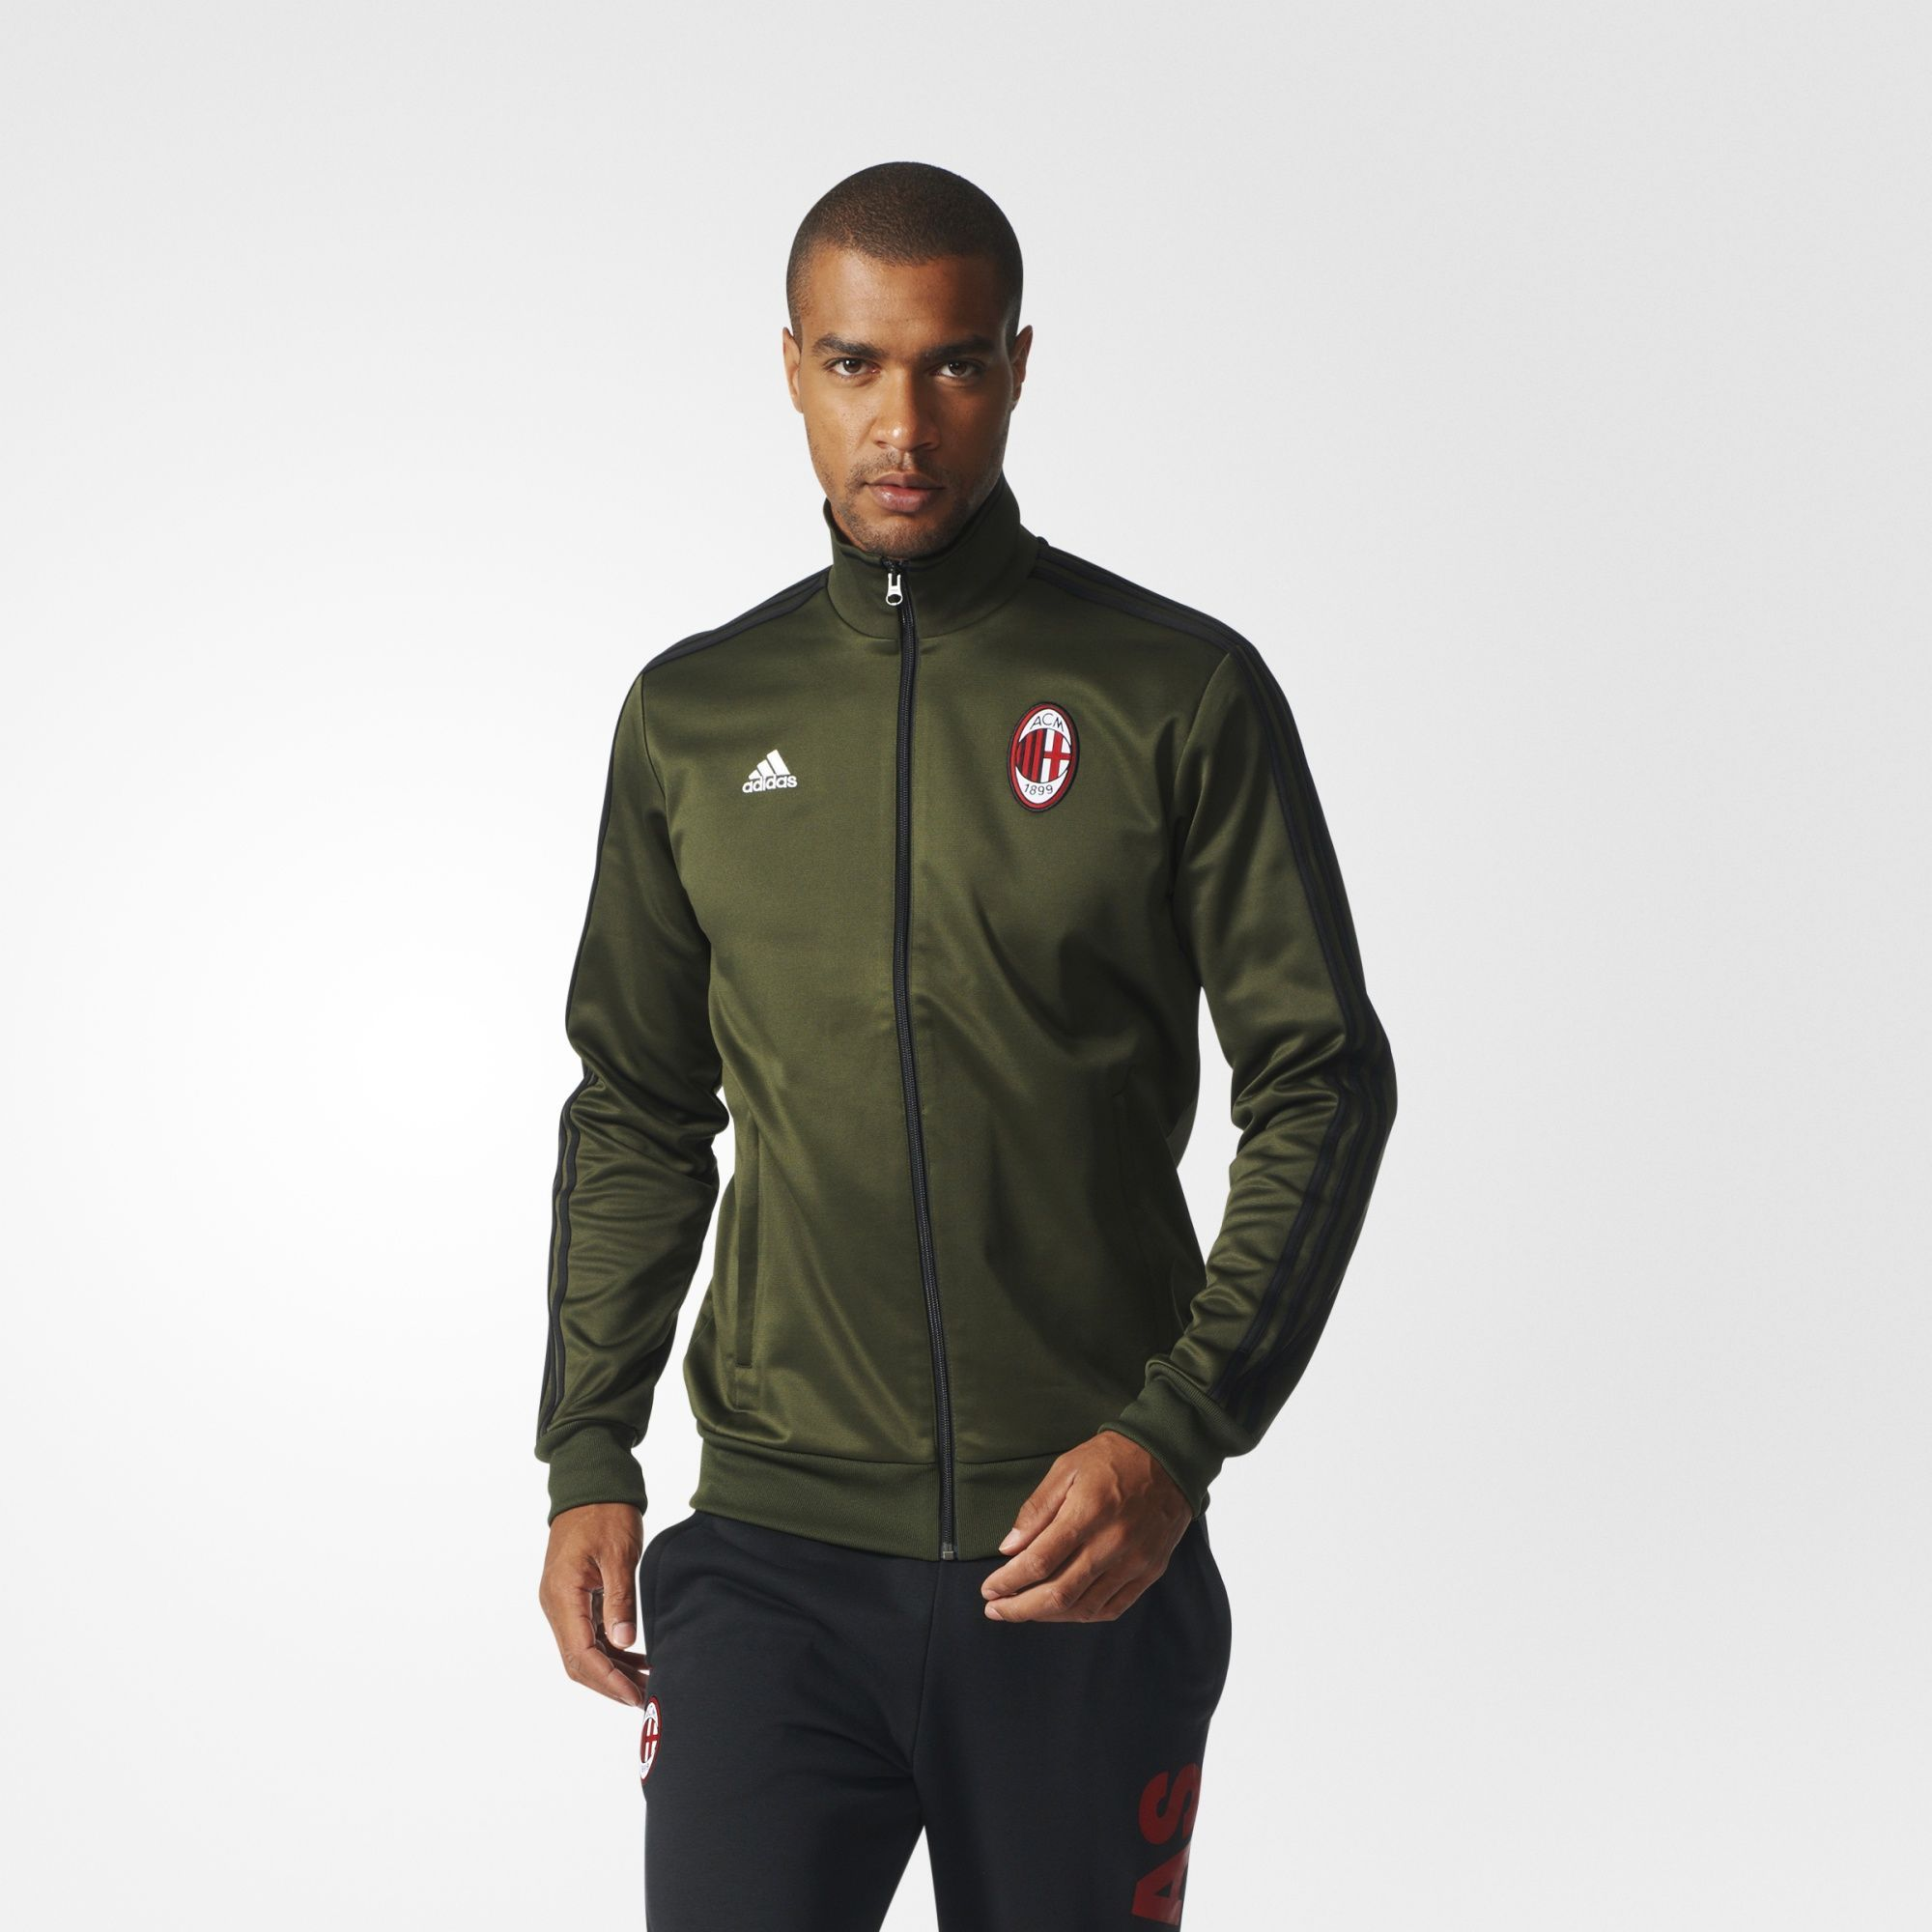 Jacket tracksuit Adidas of the team of the AC Milan of